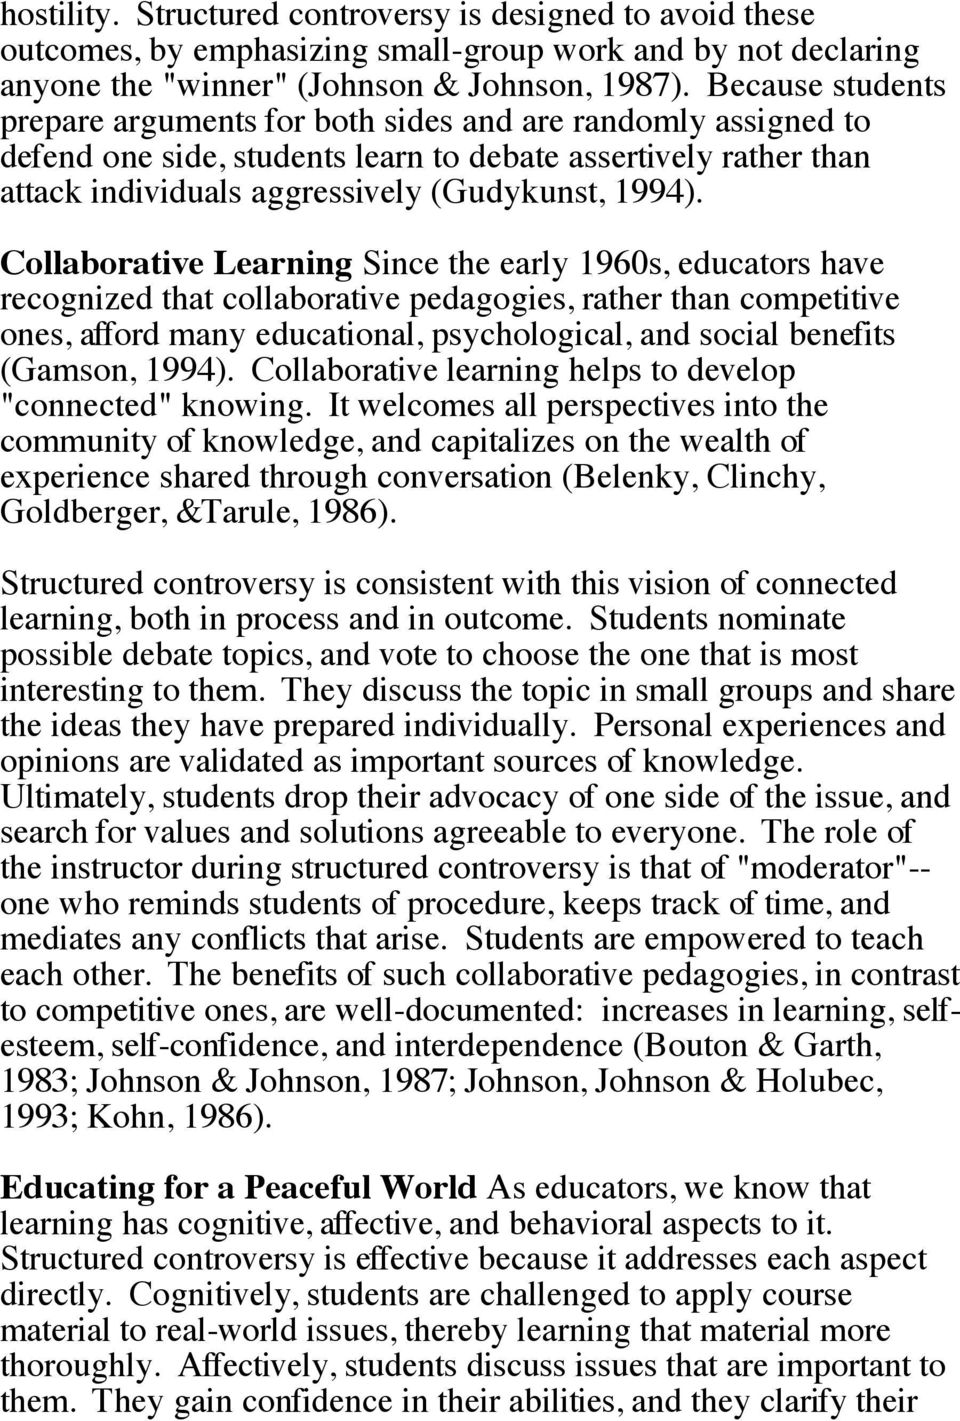 Collaborative Learning Since the early 1960s, educators have recognized that collaborative pedagogies, rather than competitive ones, afford many educational, psychological, and social benefits